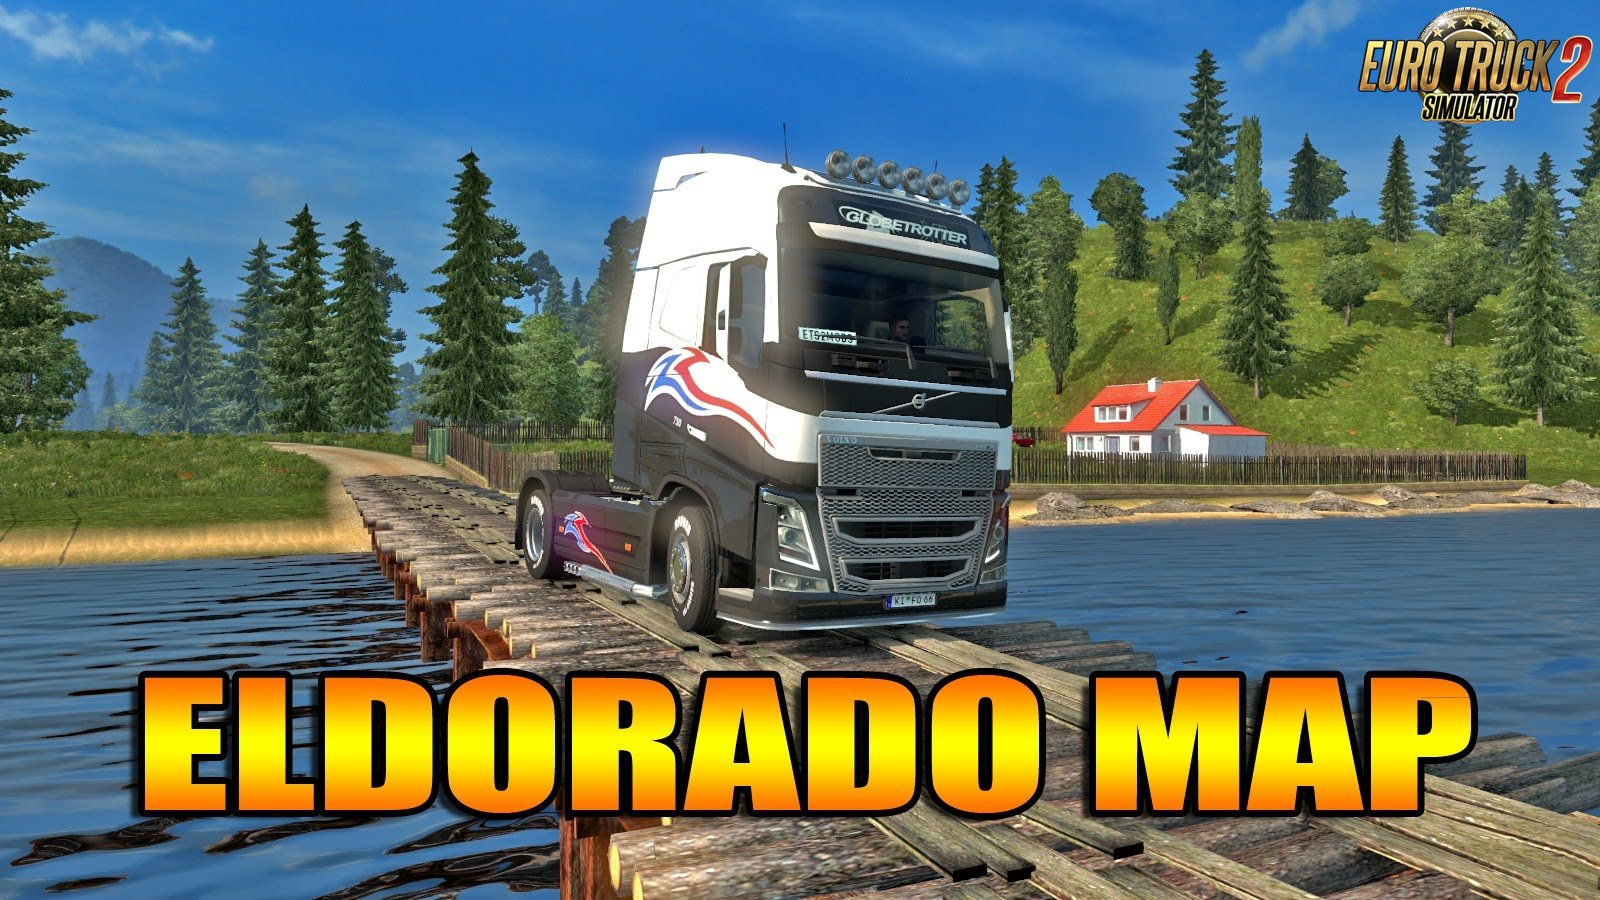 Eldorado Rodobrasil Map v1.6.8 by Elvisfelix (v1.27.x)